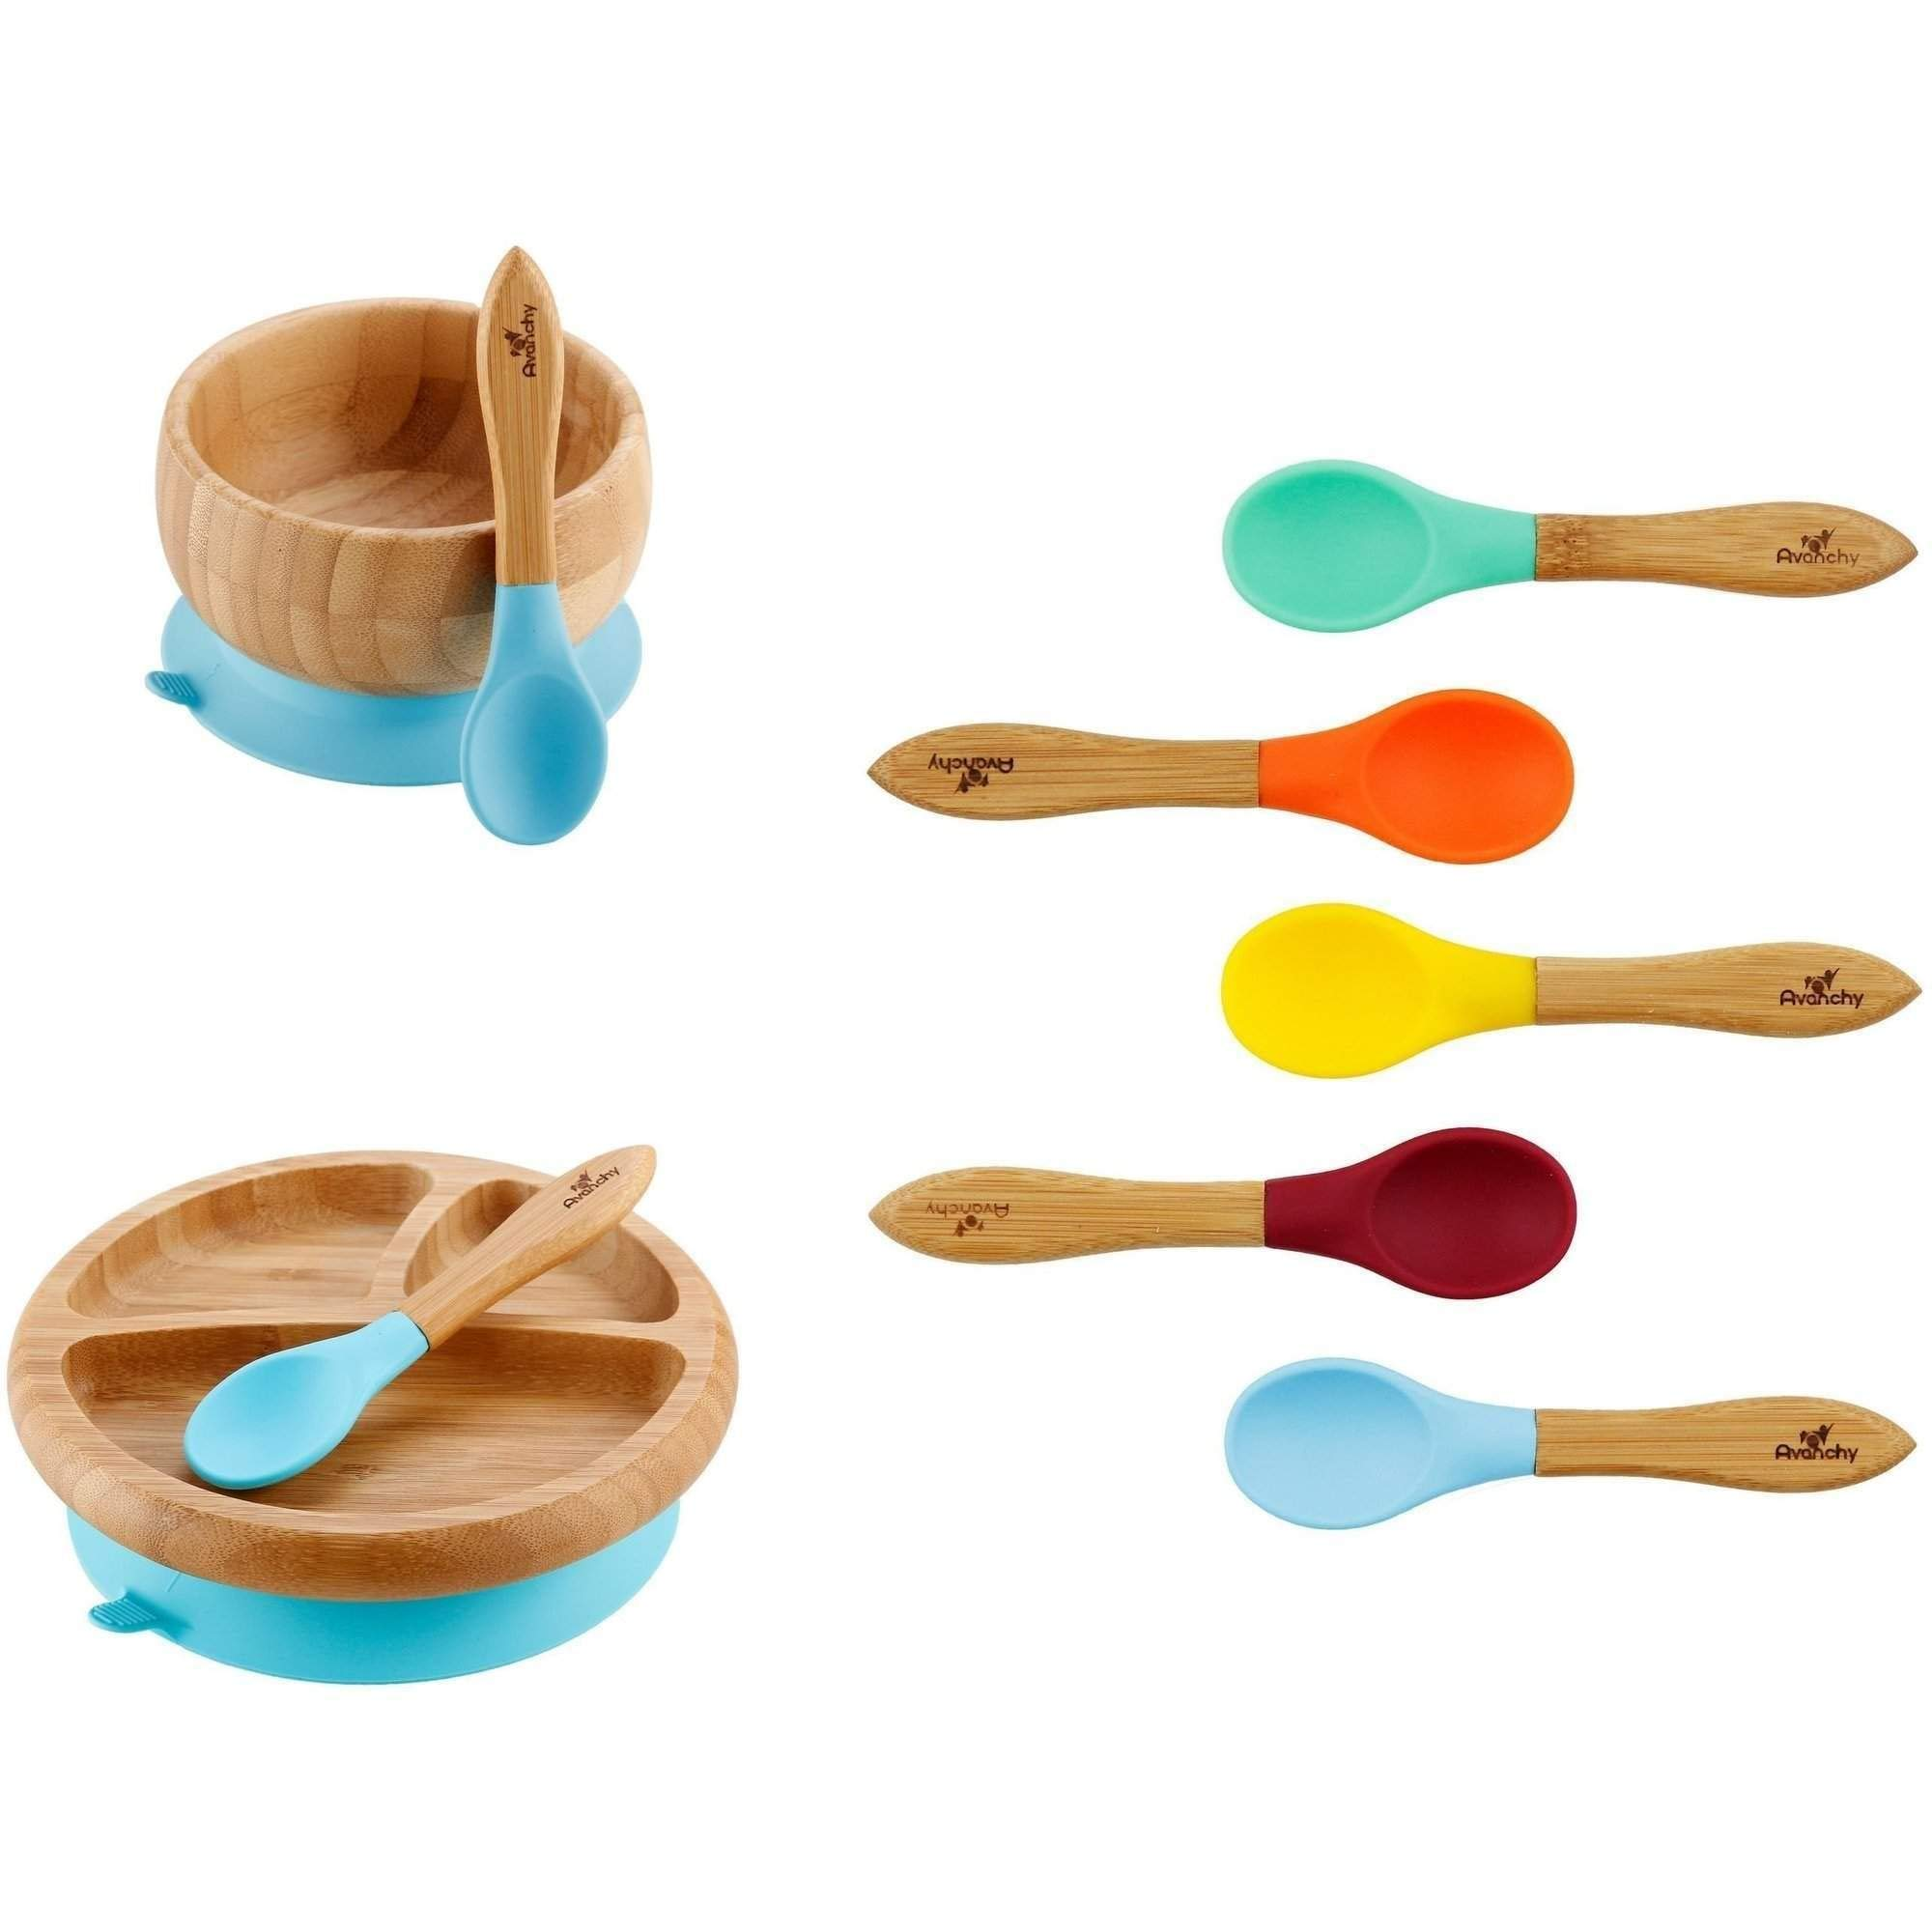 Rainbow Gift Set Blue - Baby Shower, Baby Registry, Home Set & More. Baby Girl, Baby Boy, Unisex. Baby Bowl Set + Baby Plate Set + Assorted Baby Spoons Set.